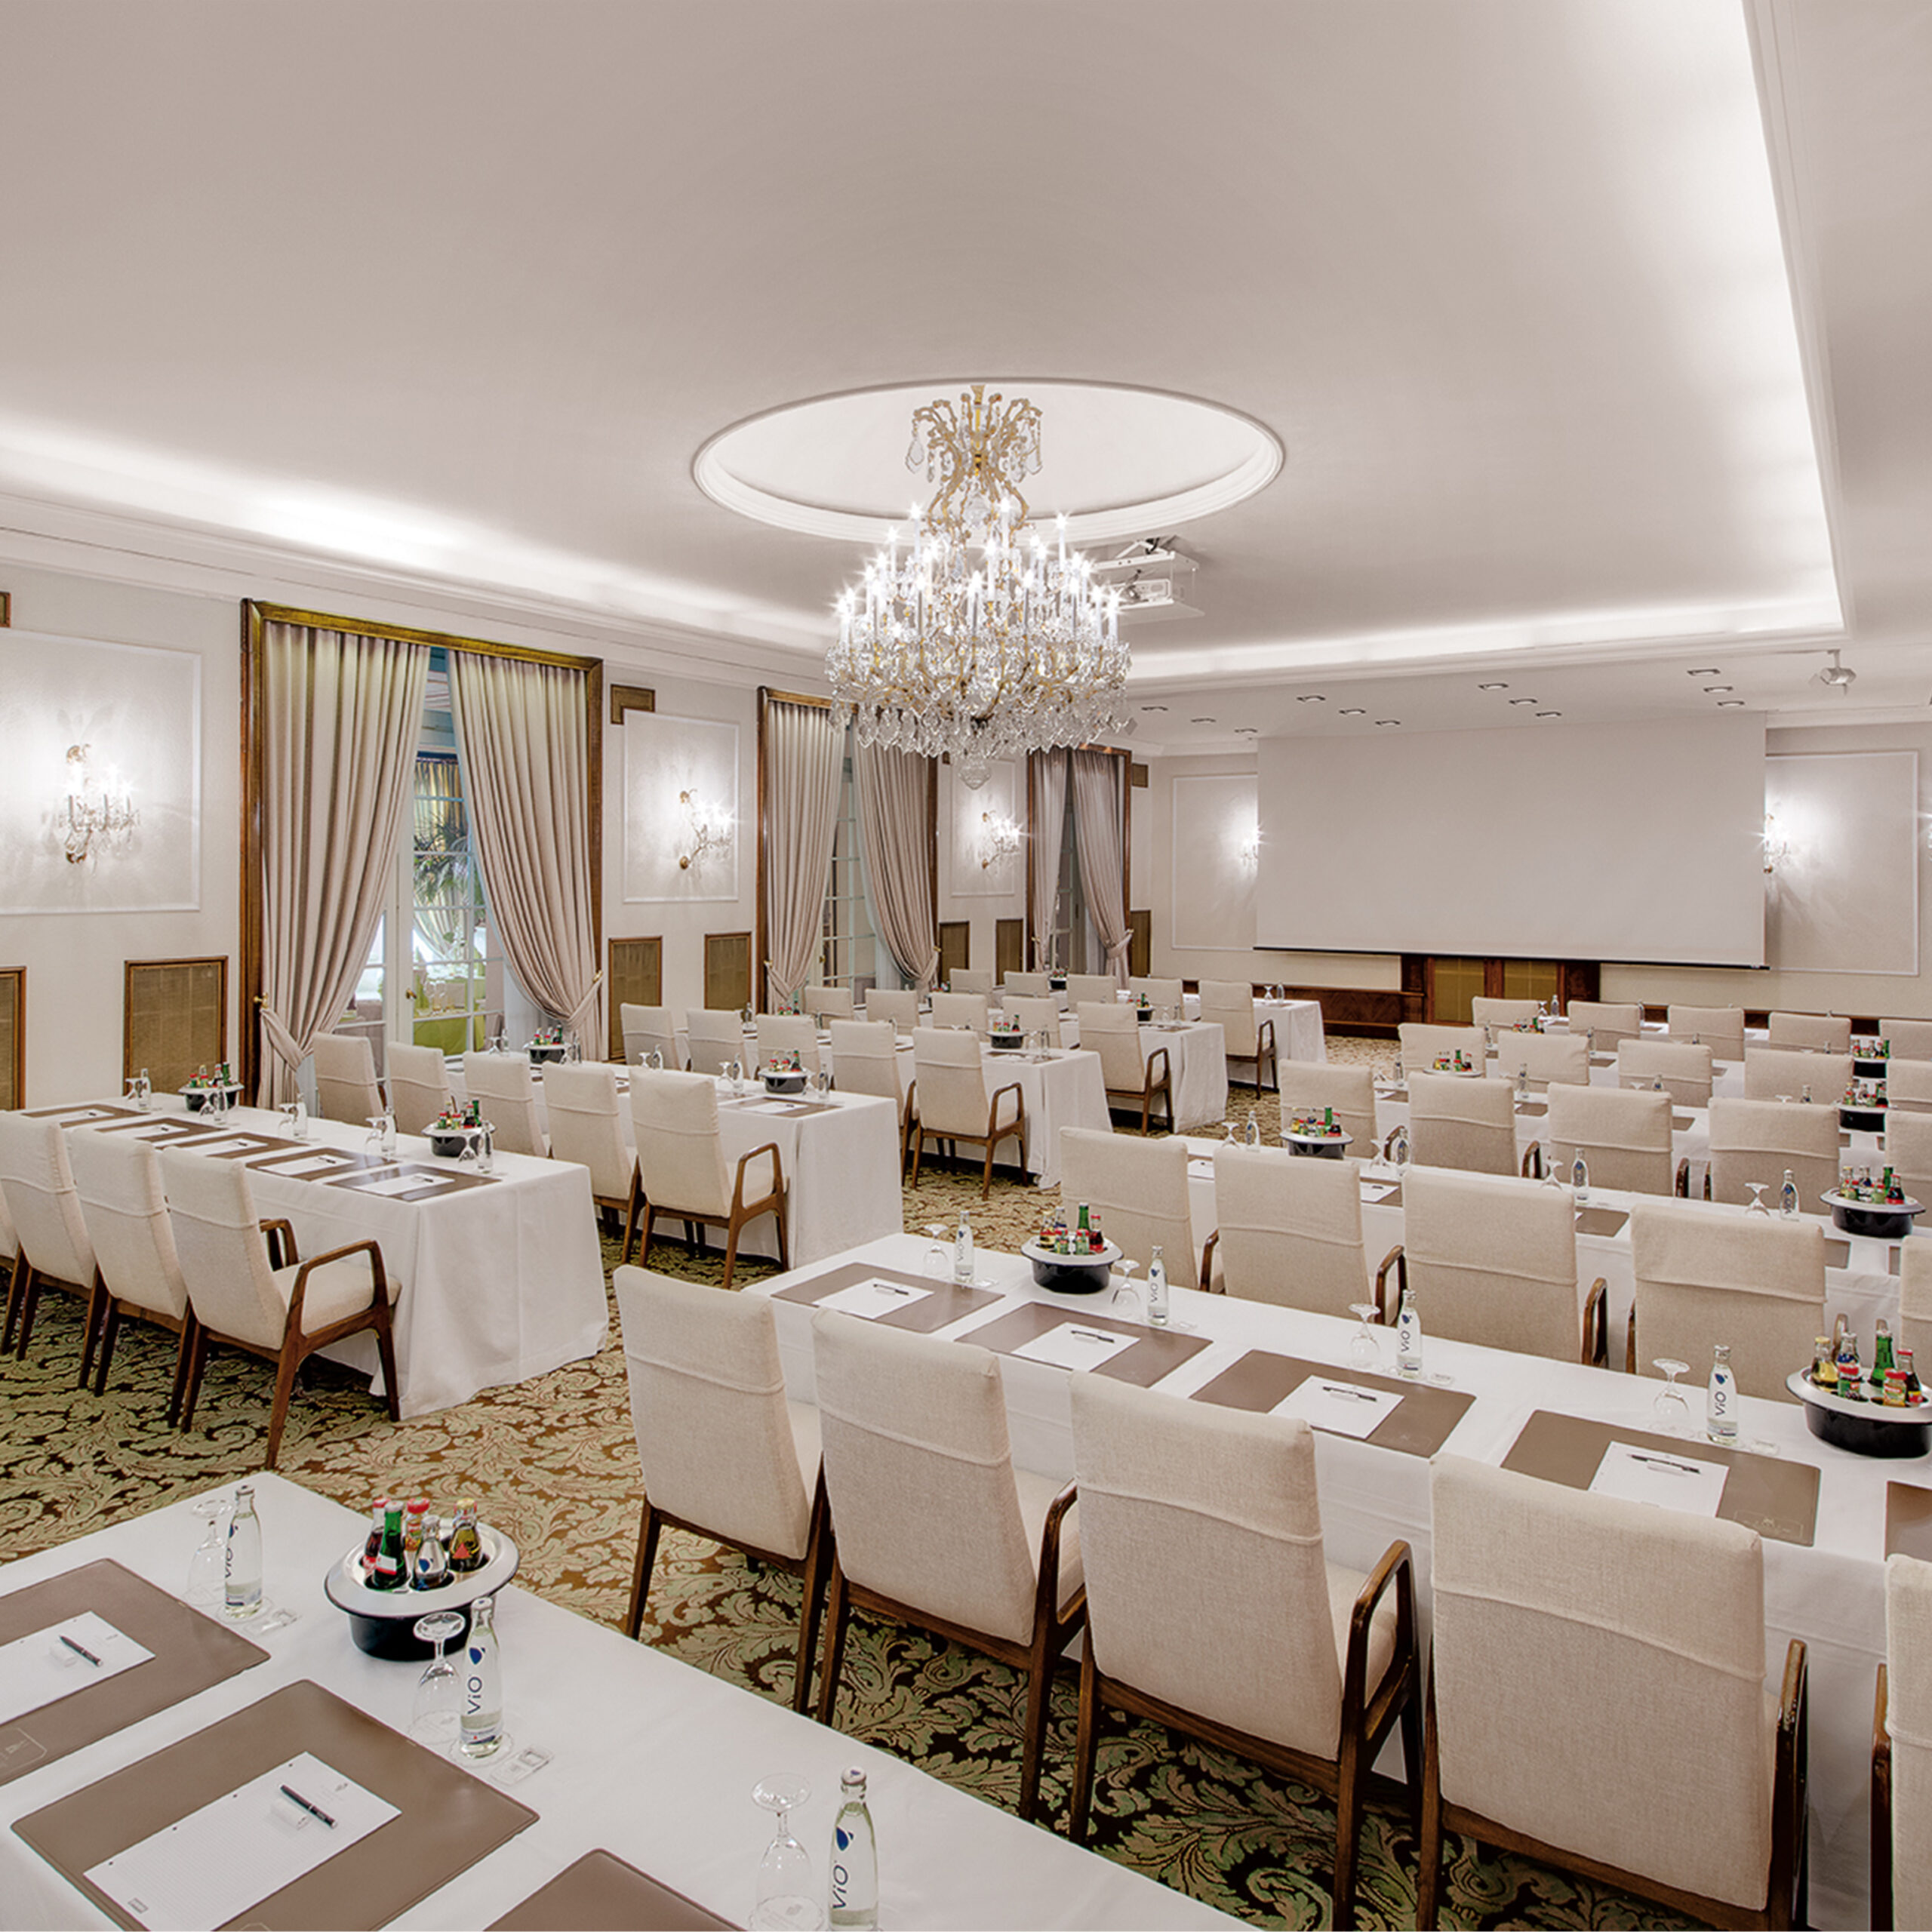 Conferences and business events